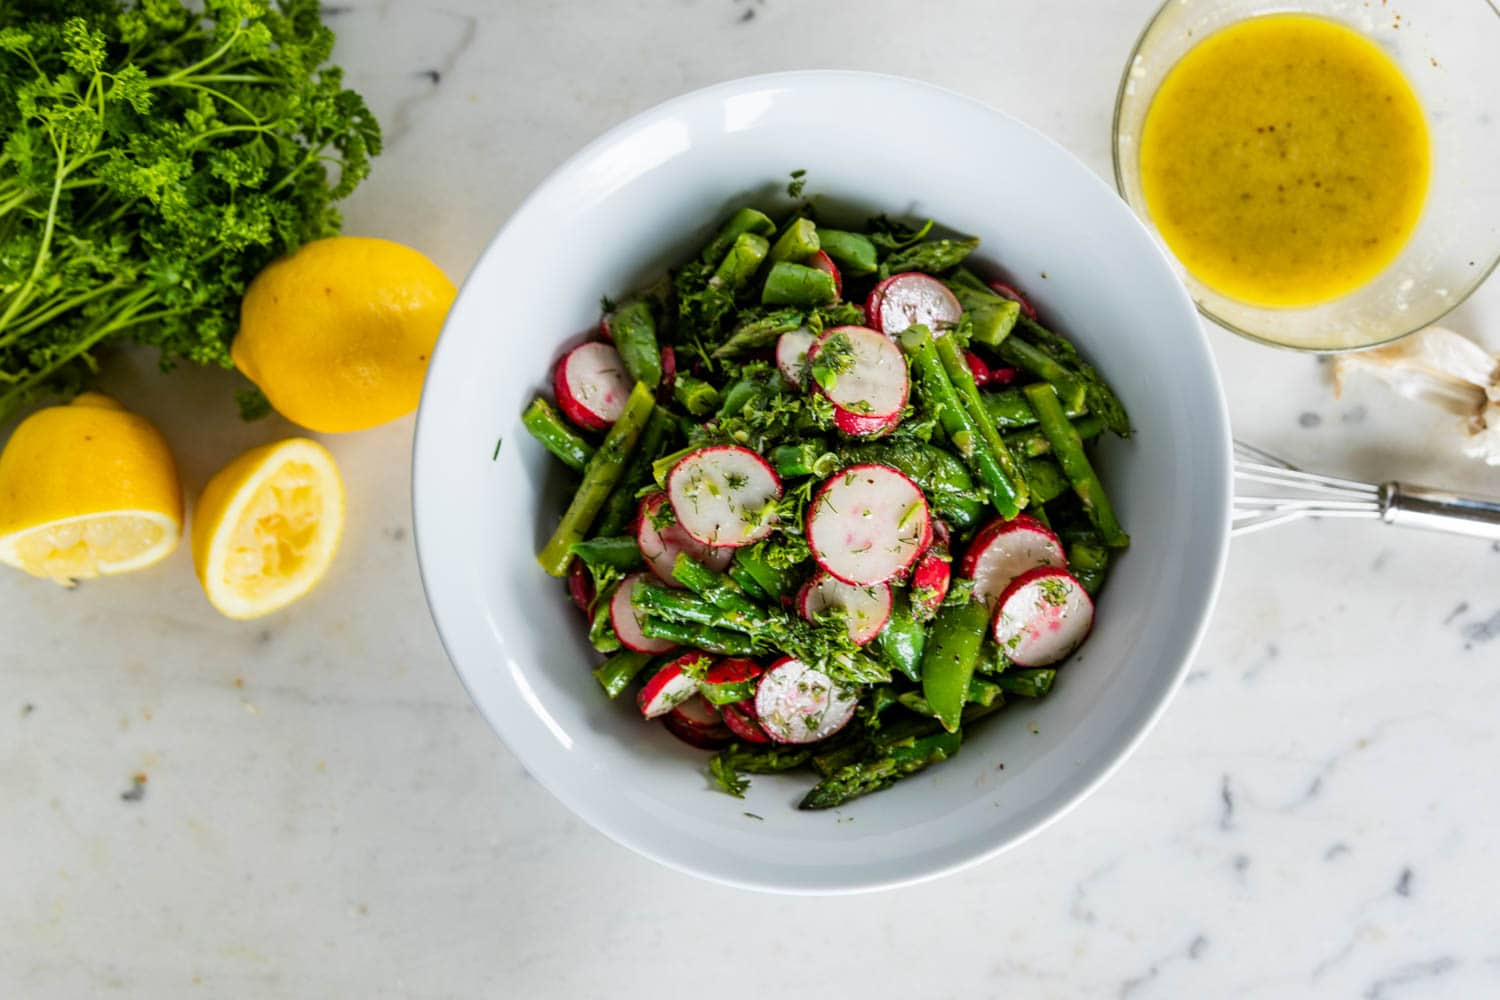 Top down view of asparagus salad with radish and sugar peas in a large white bowl with extra lemons, parsley, garlic and homemade vinaigrette on a marble surface